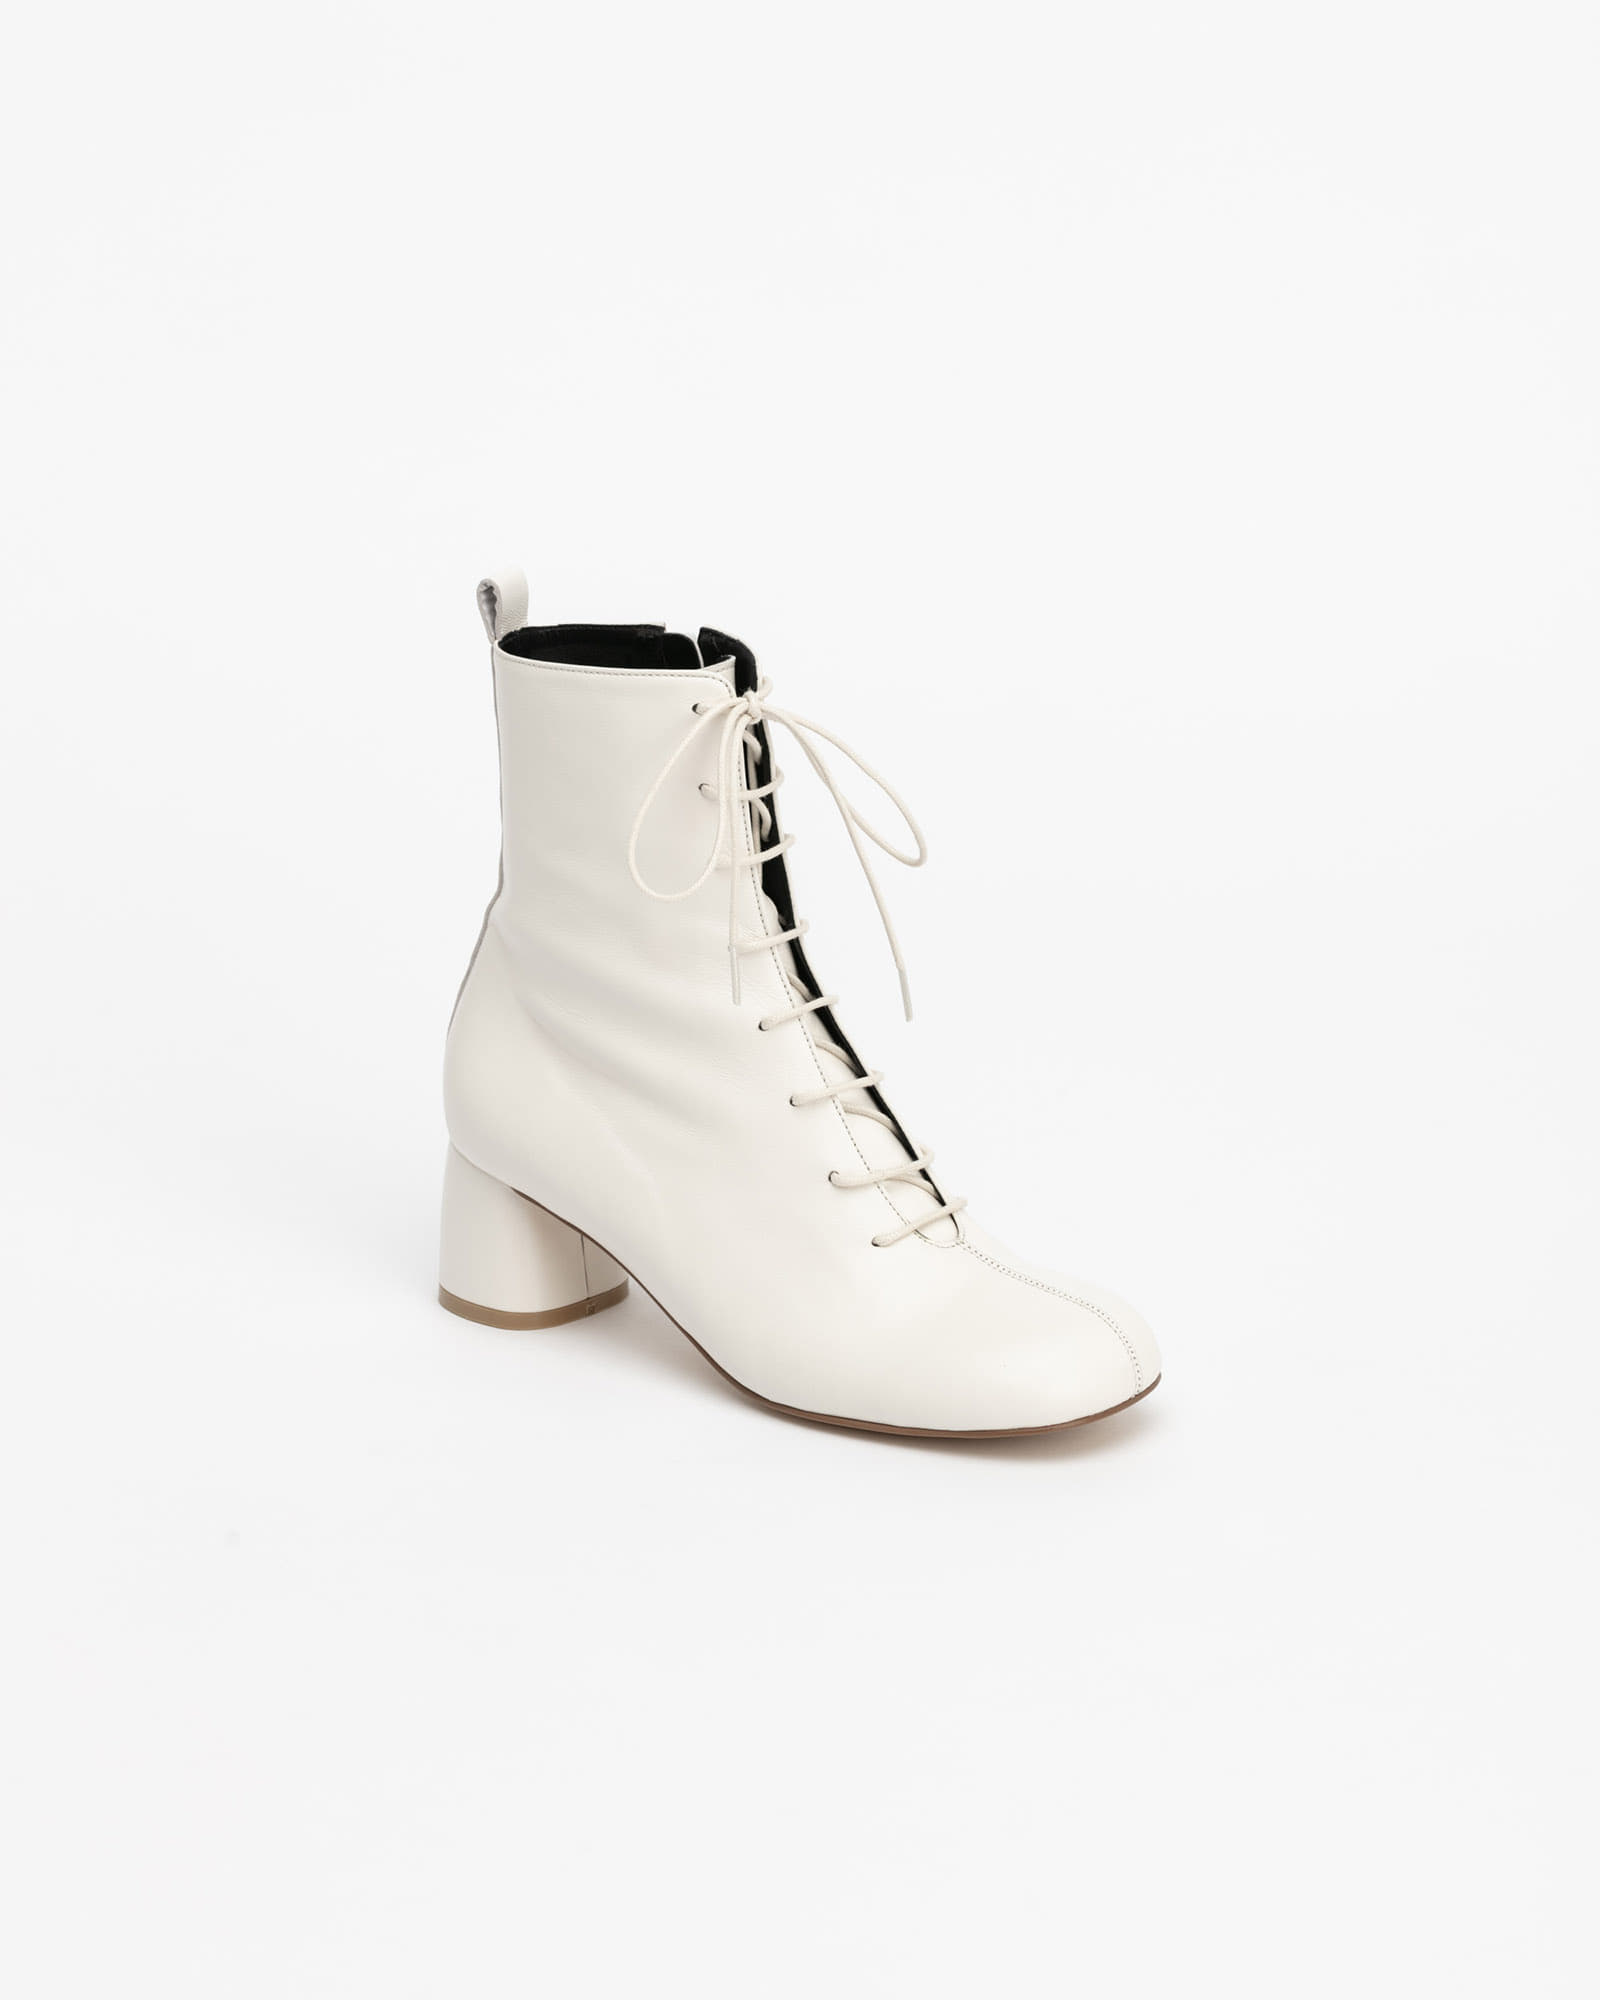 Proton Lace-up Boots in Pure White